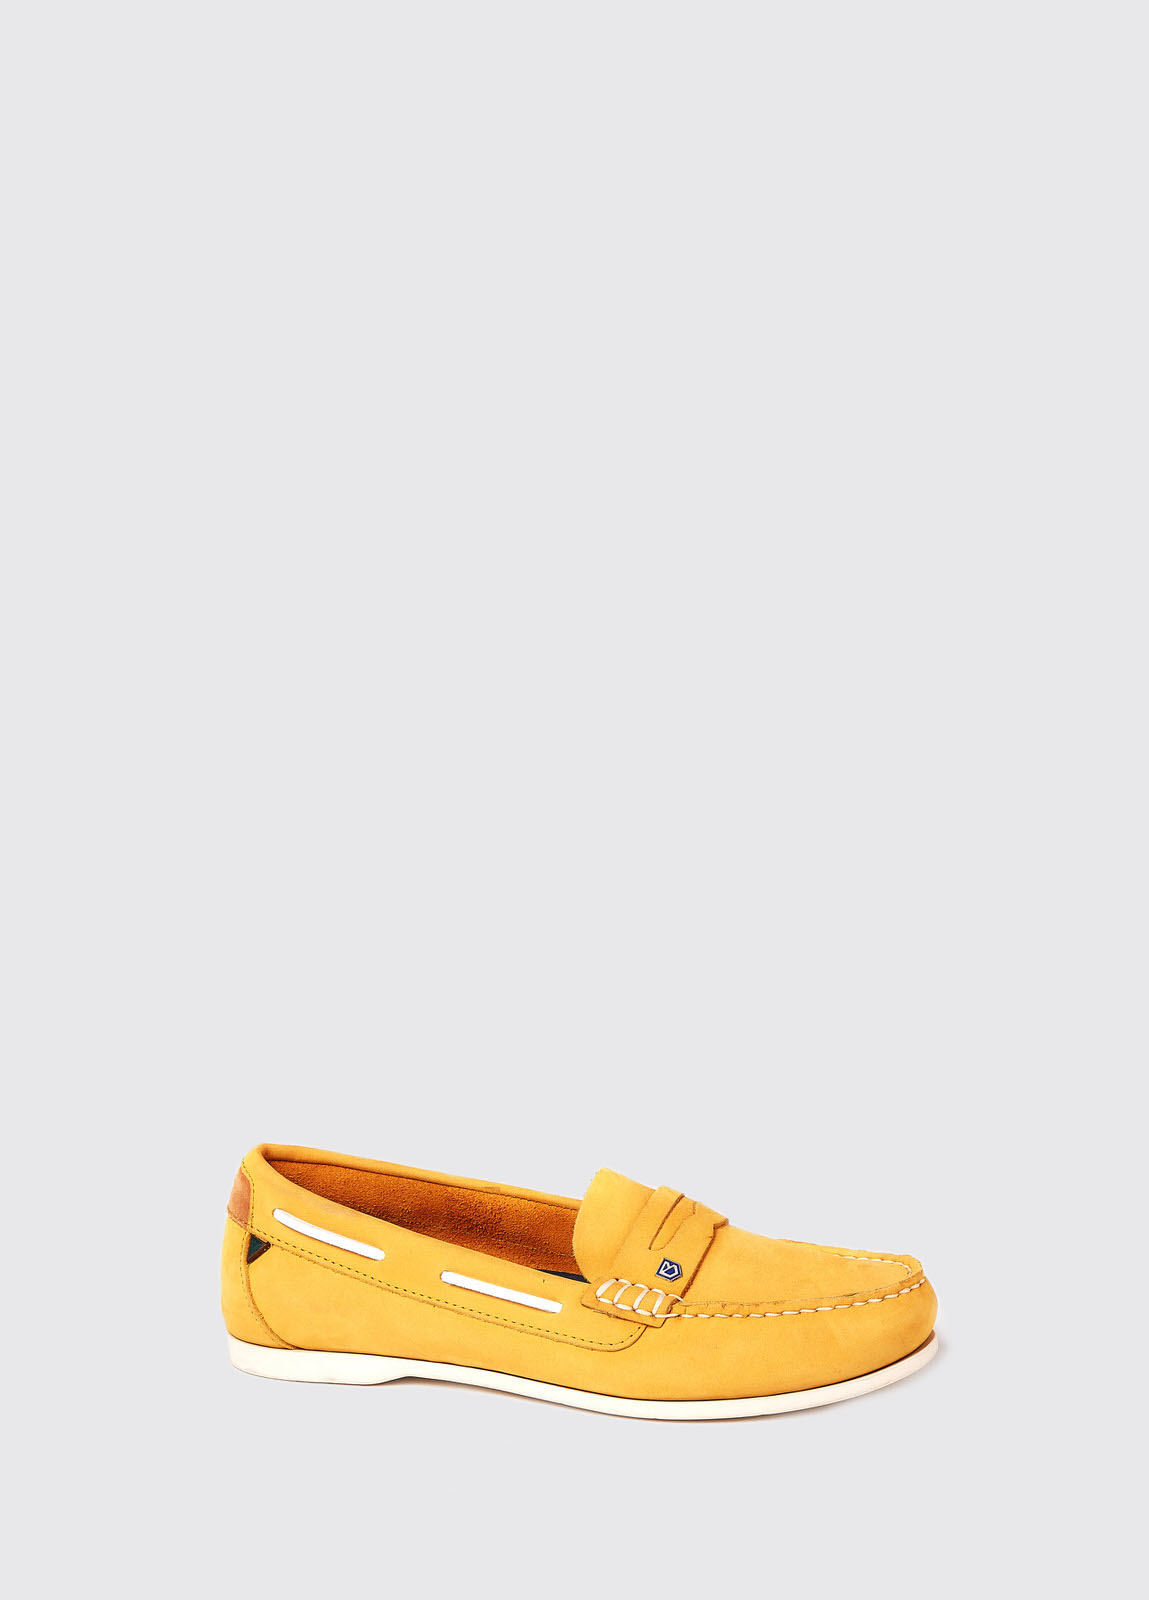 Belize Deck Shoe - Sunflower